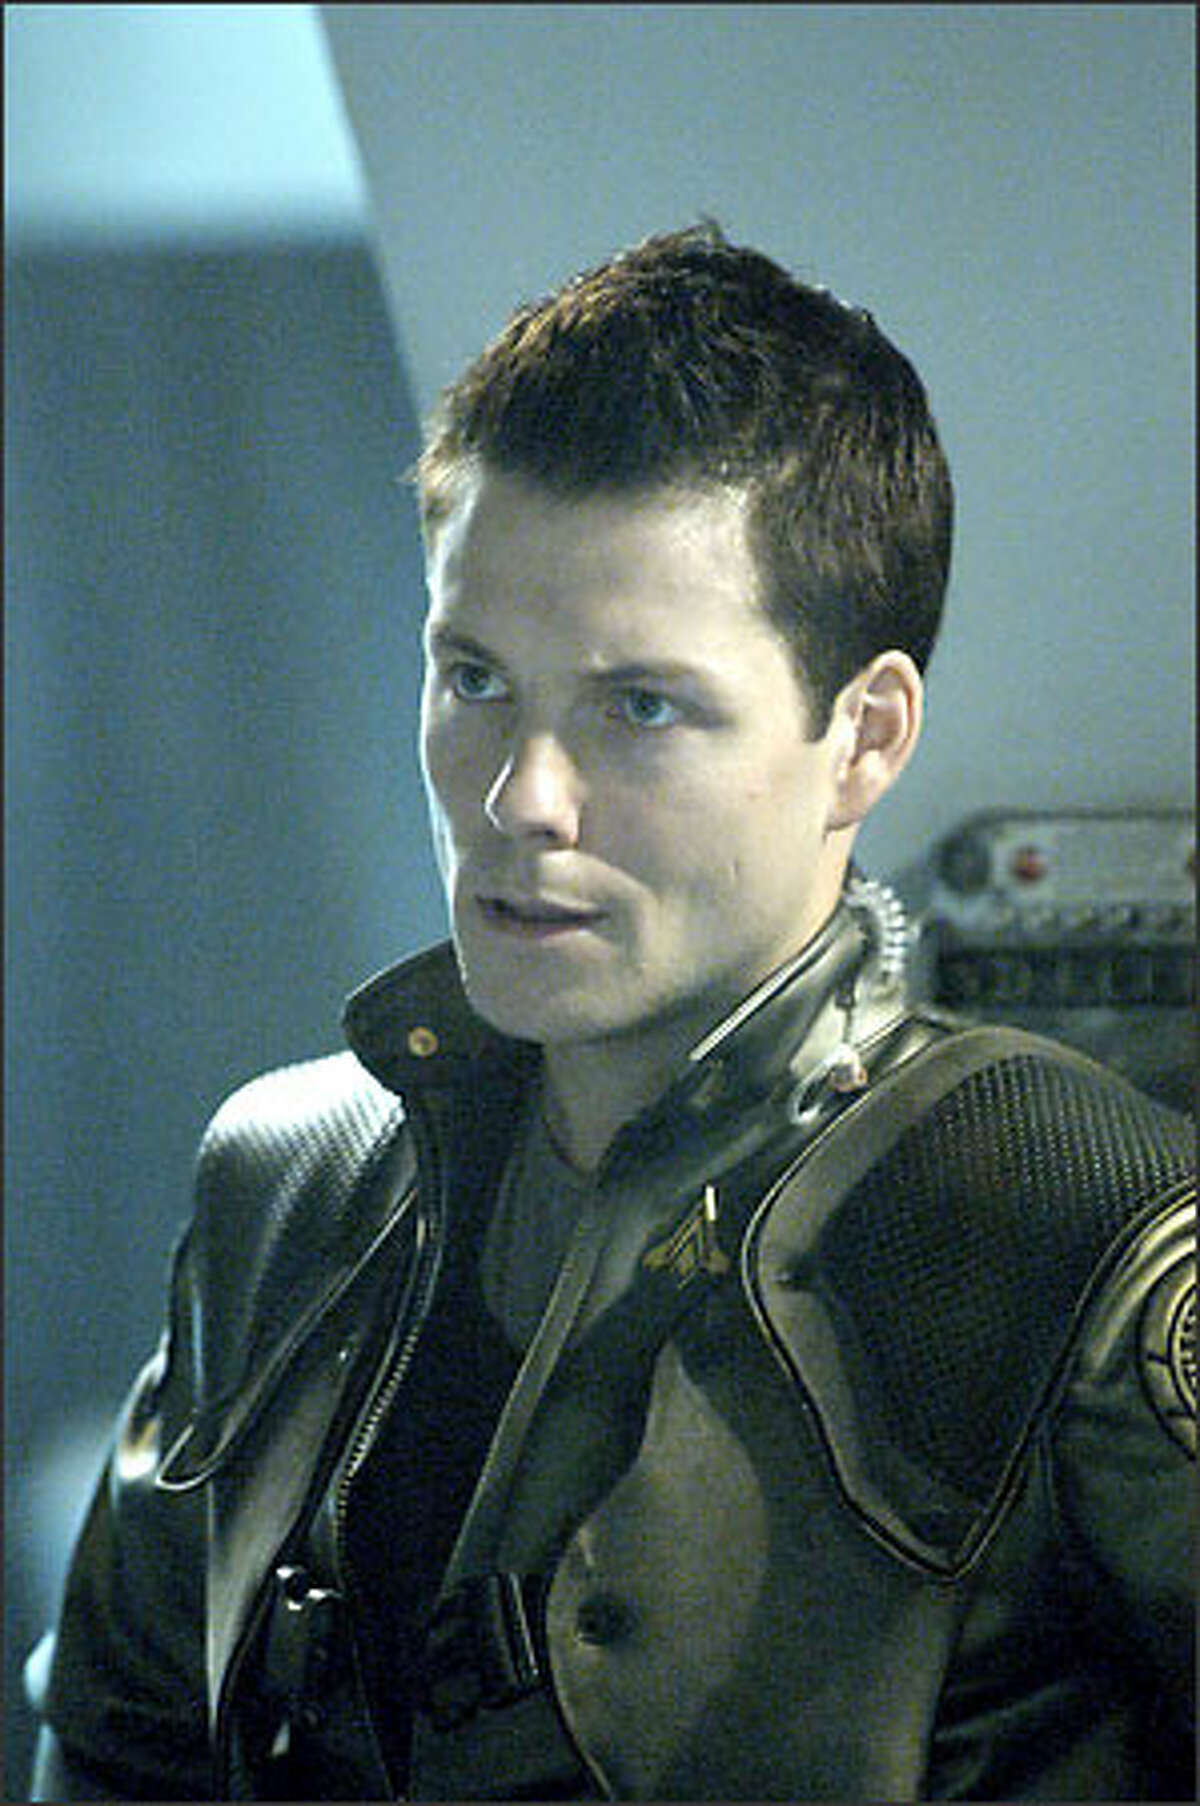 """Capt. Lee Adama (Jamie Bamber), callsign """"Apollo,"""" the son of Galactica's commander, is one of the fighter pilots aboard the battlestar. """"Battlestar Galactica"""" airs on the Sci-Fi Channel Dec. 8-9, 2003."""